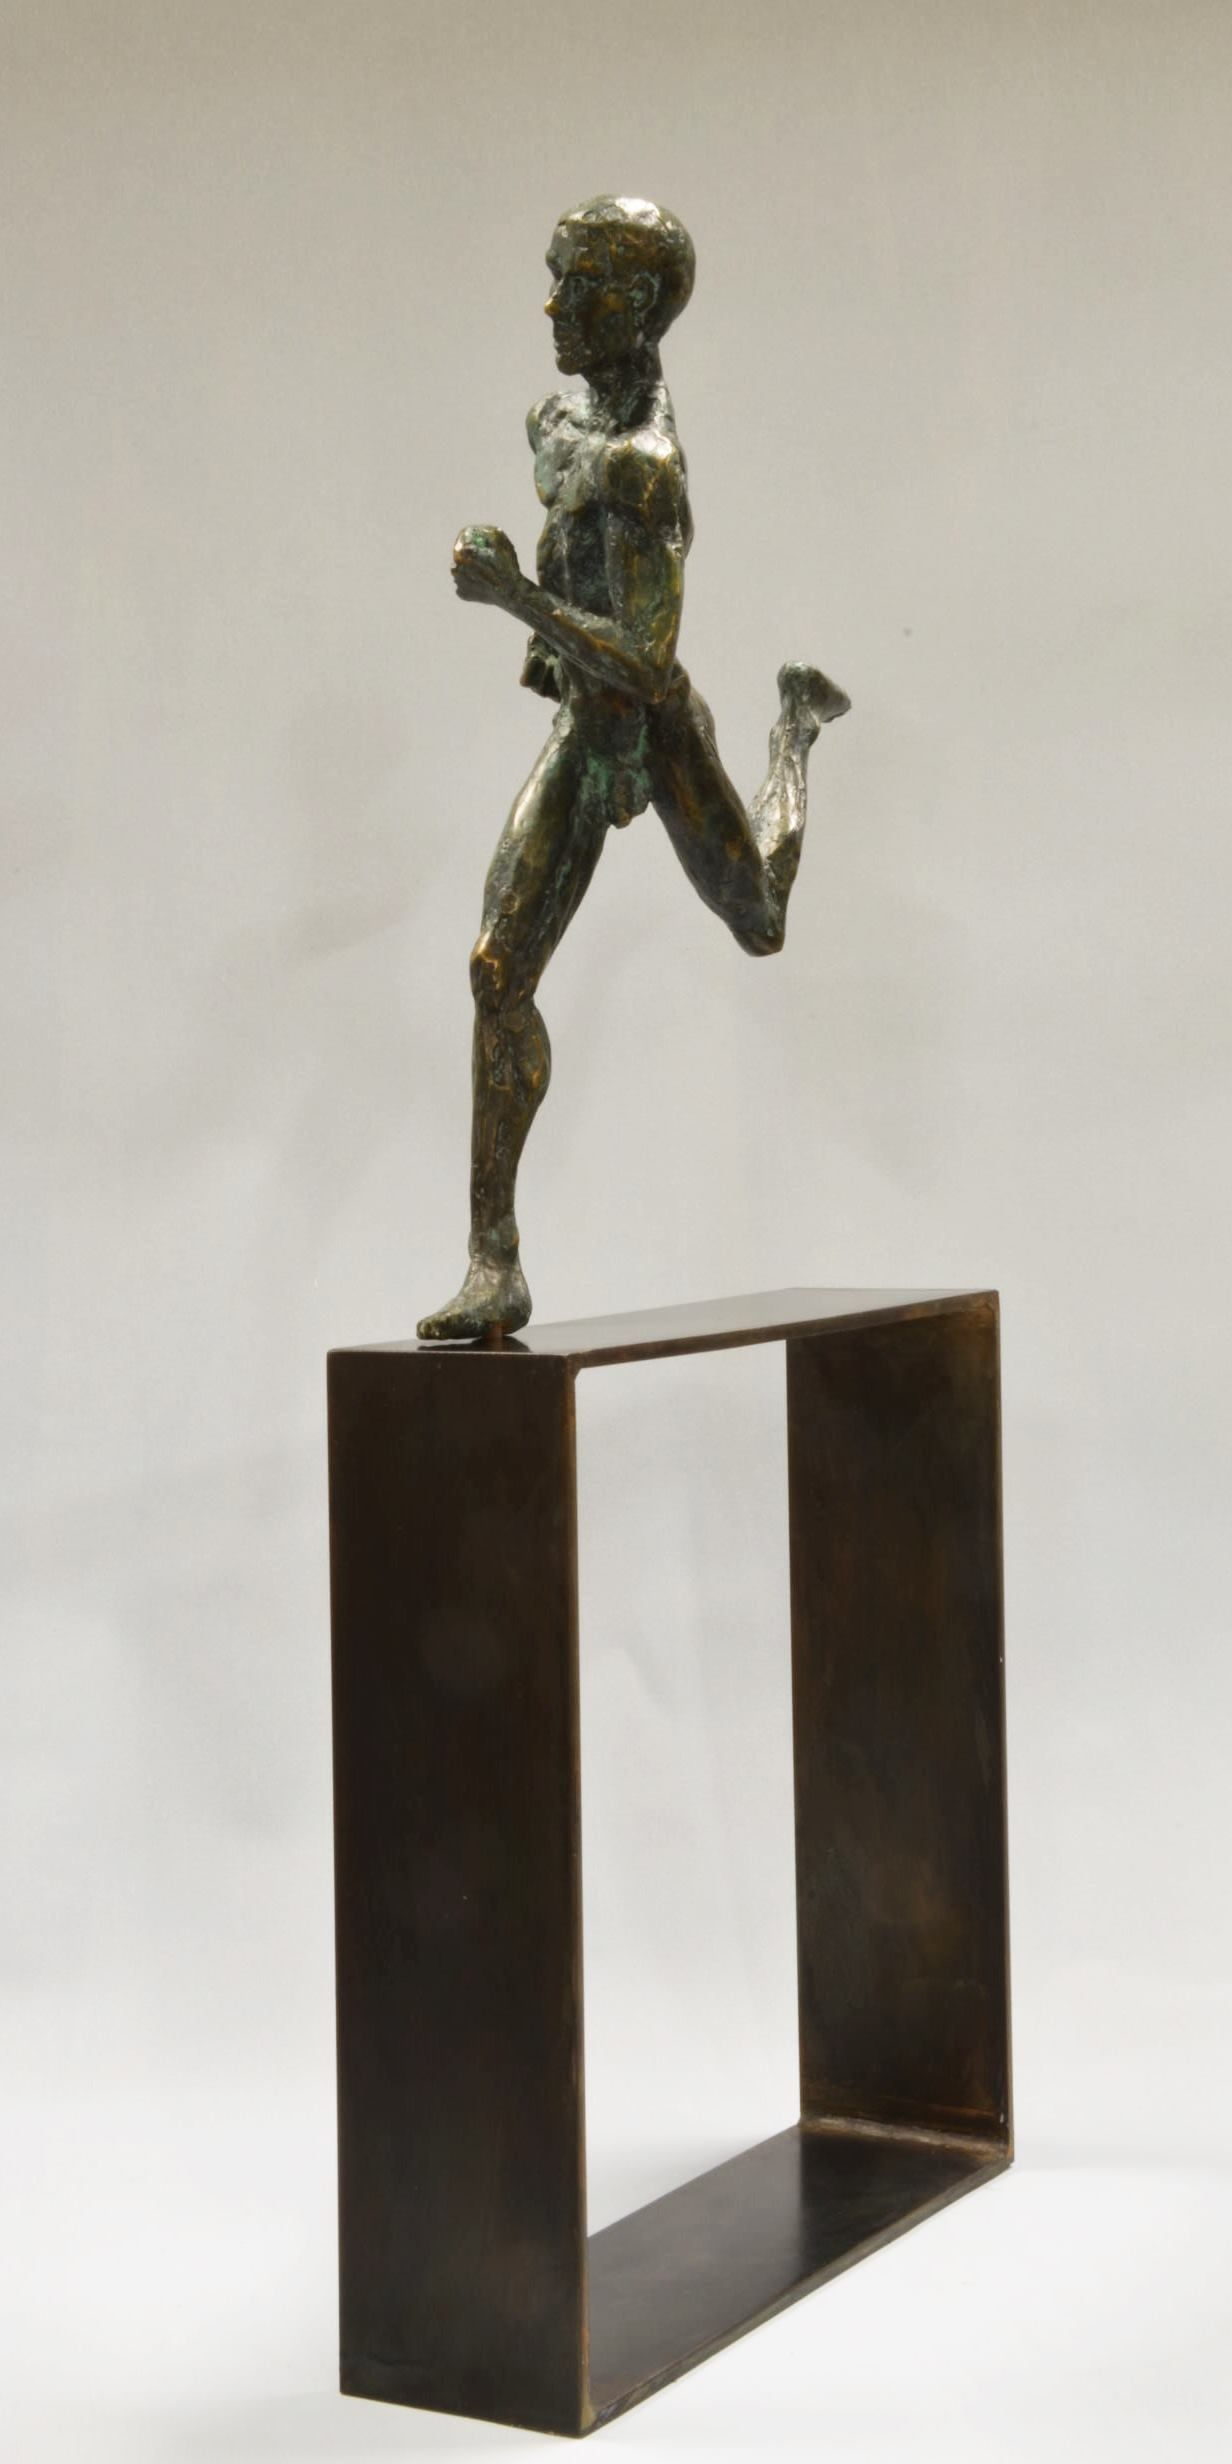 Coureur marathon,Yann Guillon,Sculpture, detail 2